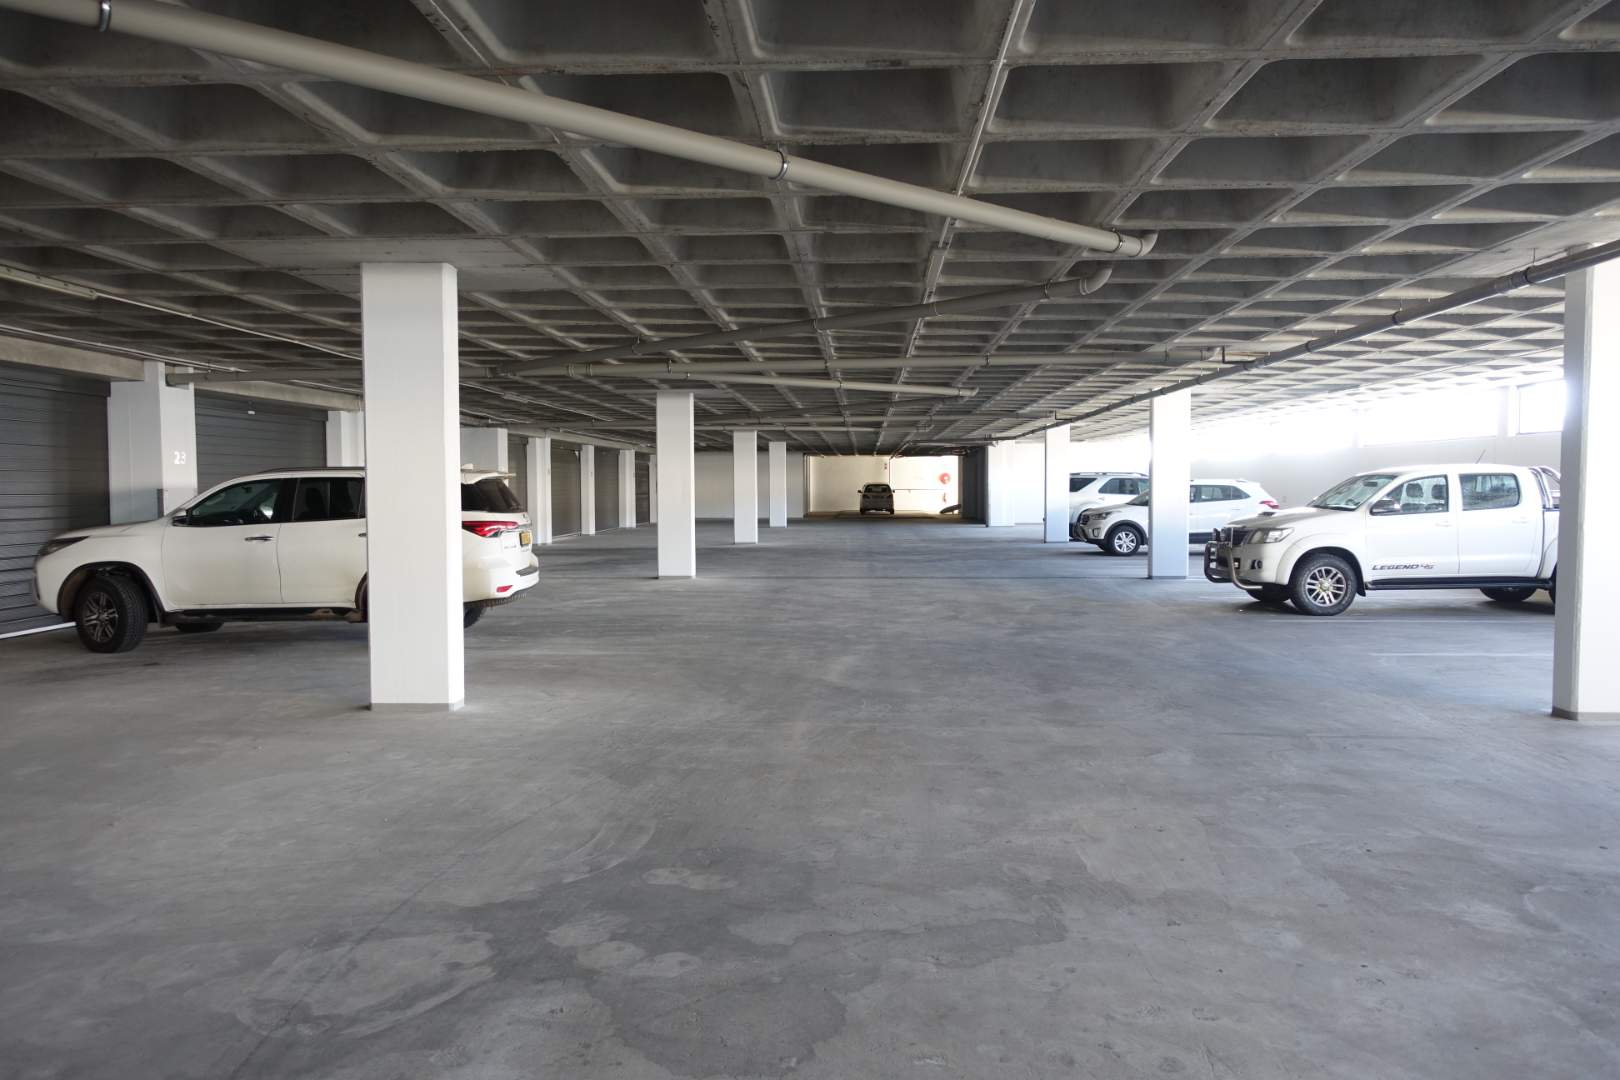 Parking bays, garages & store rooms on first floor